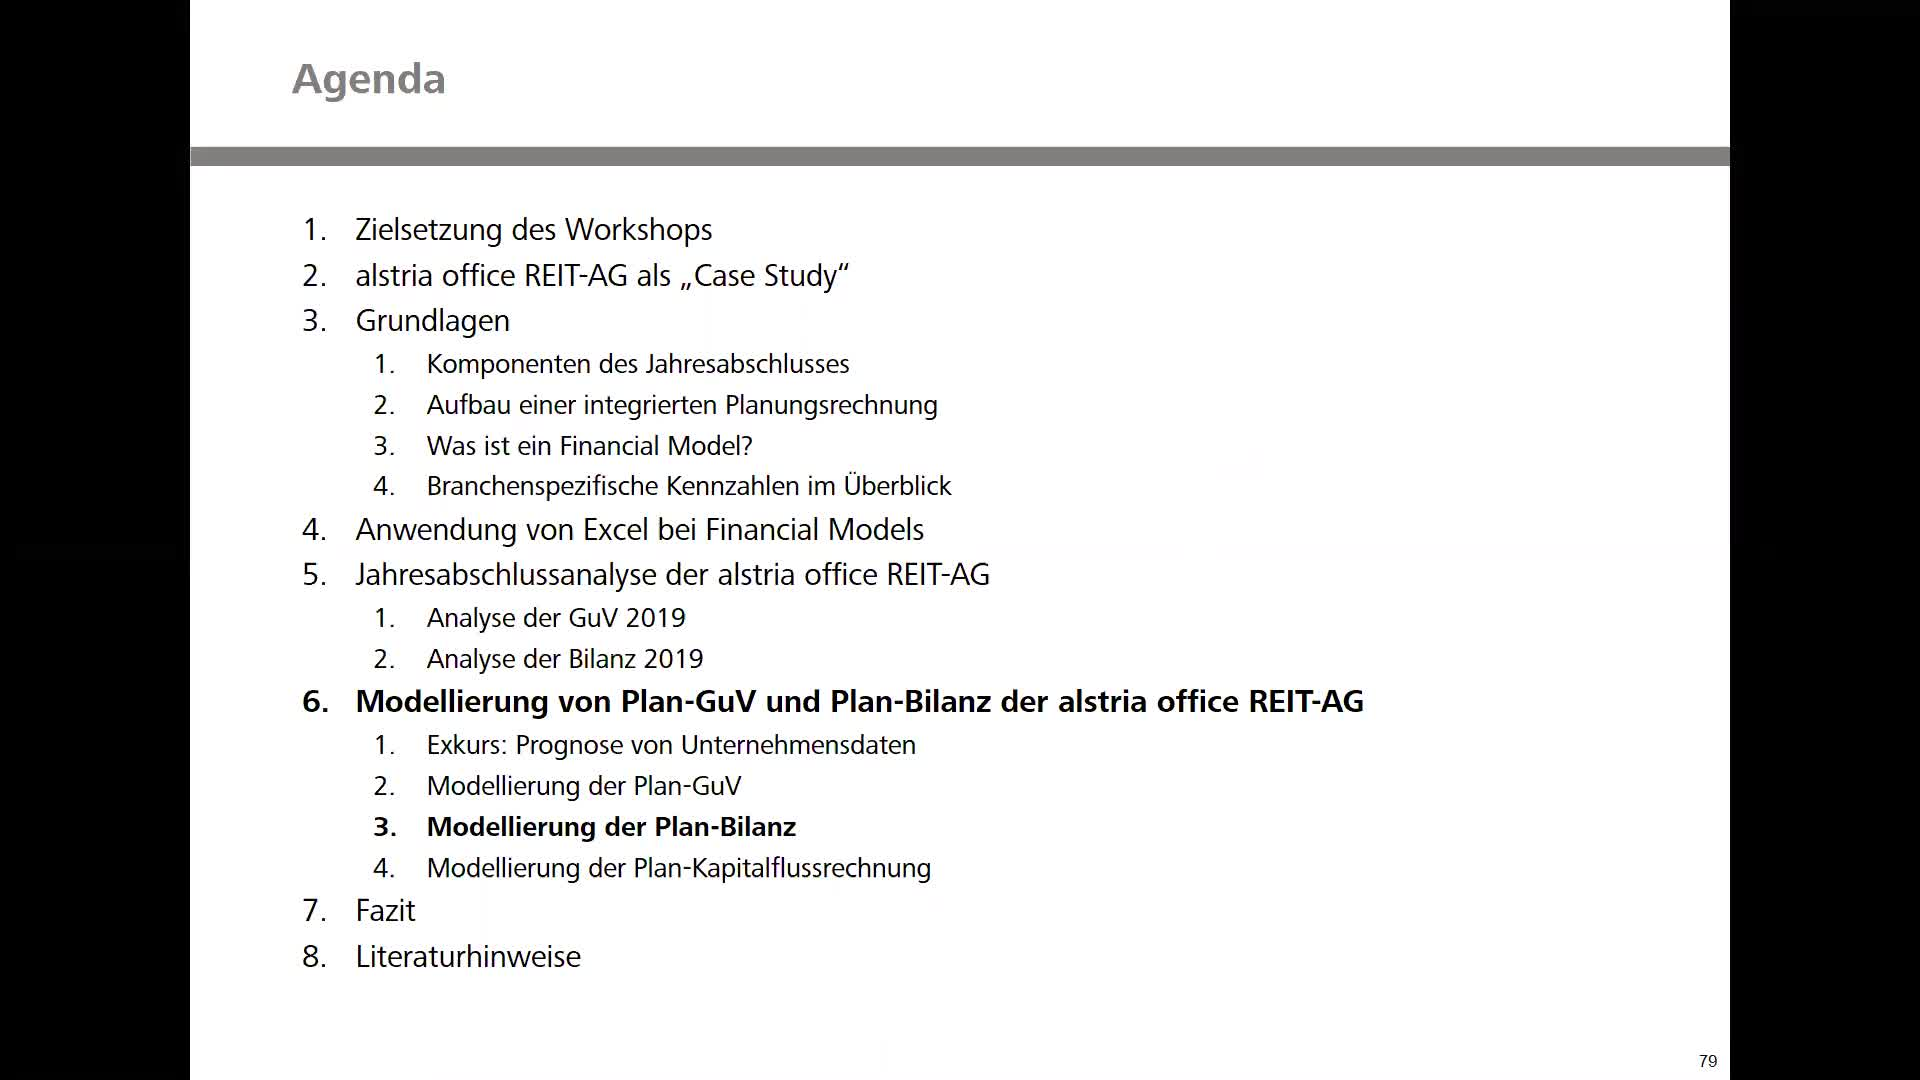 Real Estate Financial Modeling - Teil 5: Modellierung der Plan-Bilanz